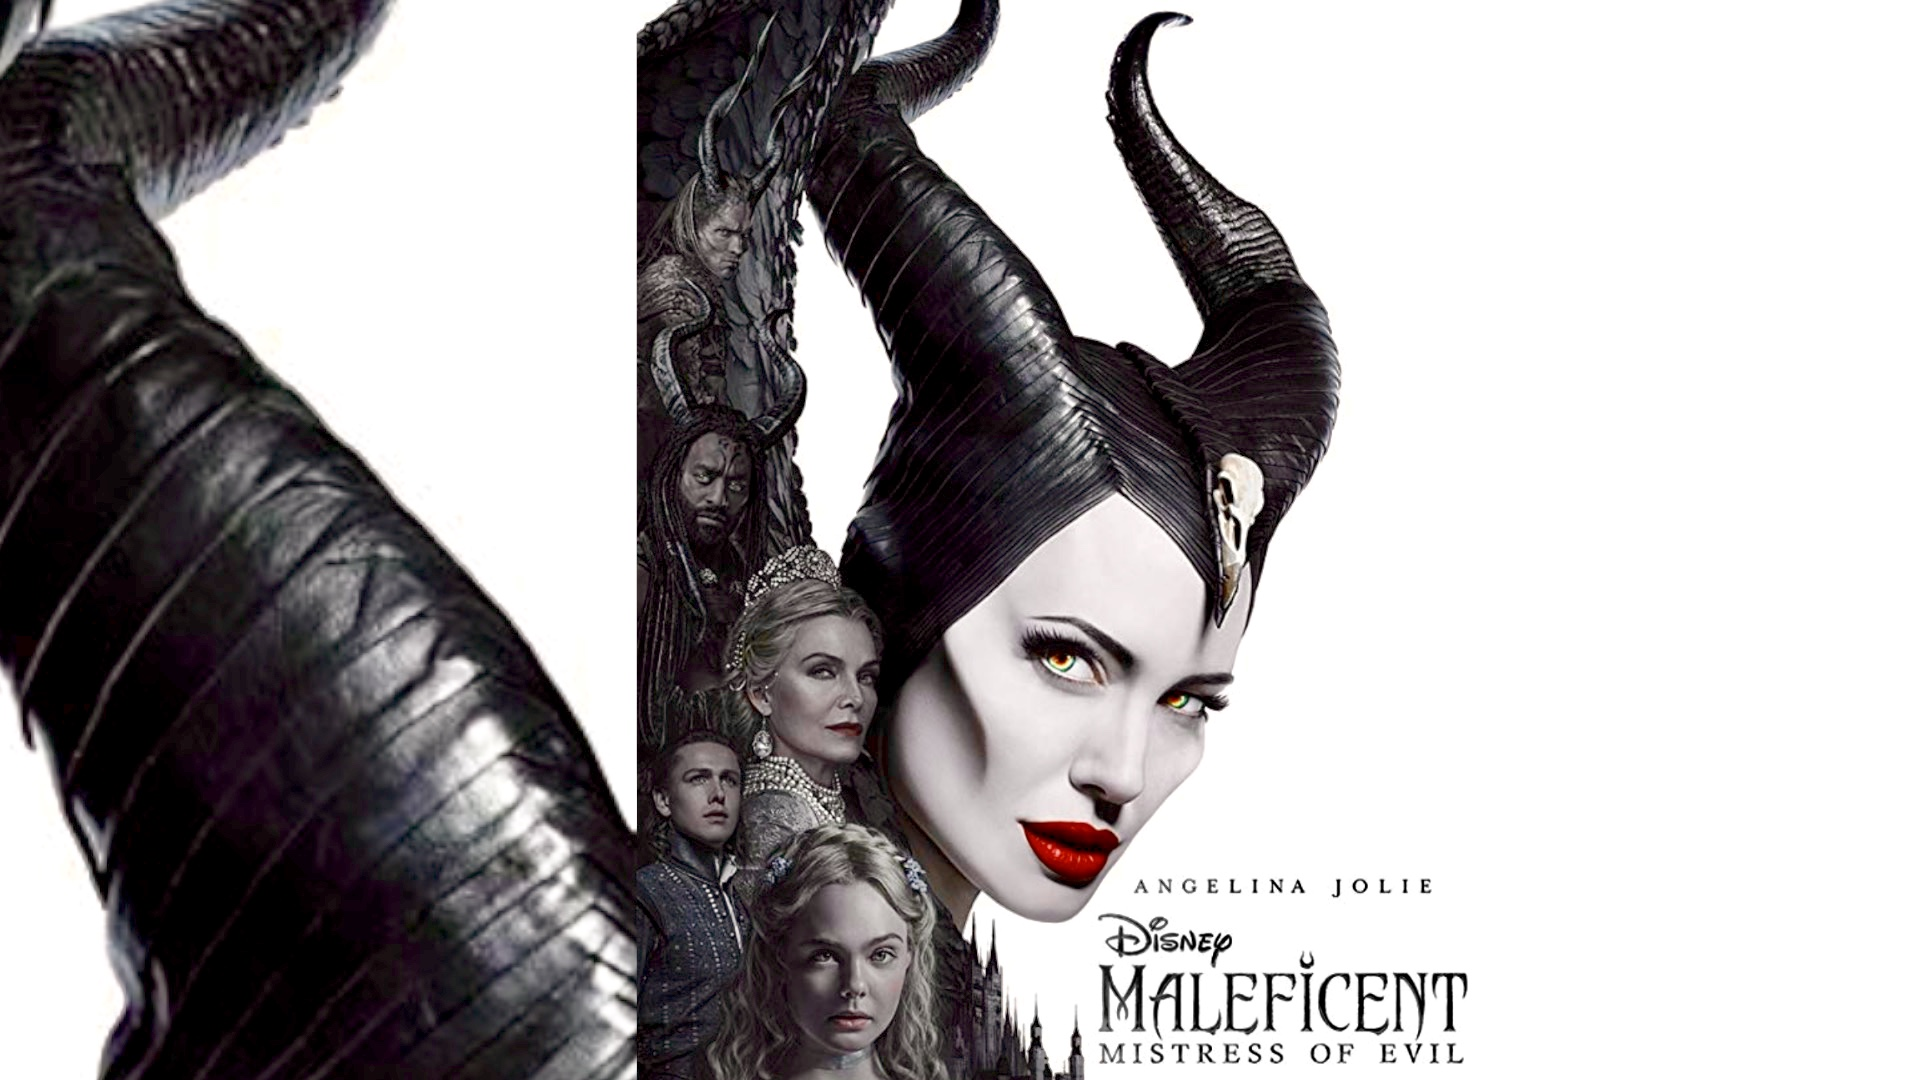 Maleficent: Mistress of Evil Trailer